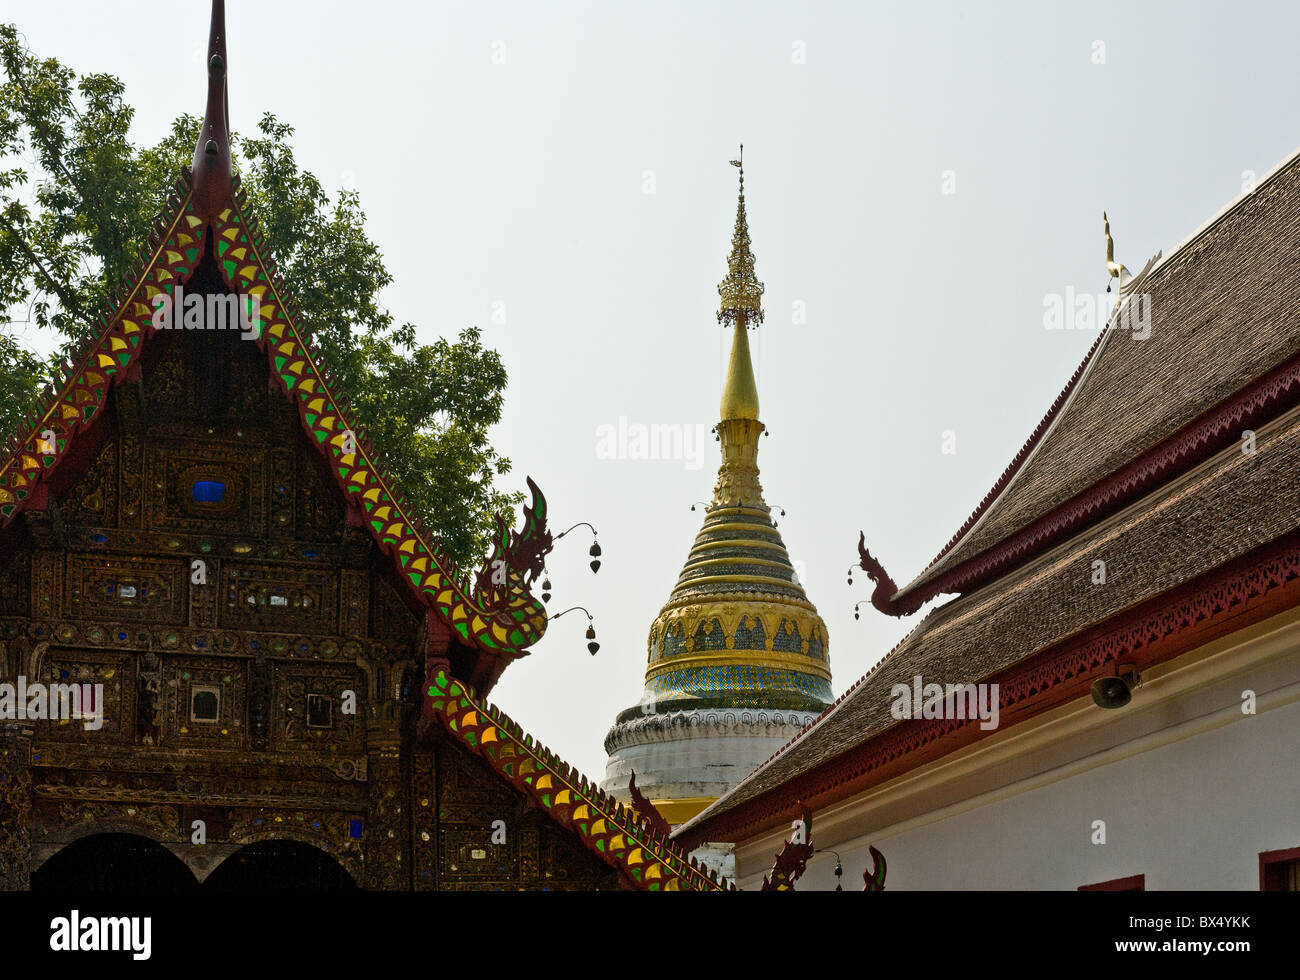 Wat Buppharam in Chiang Mai in Thailand South East Asia. Stock Photo